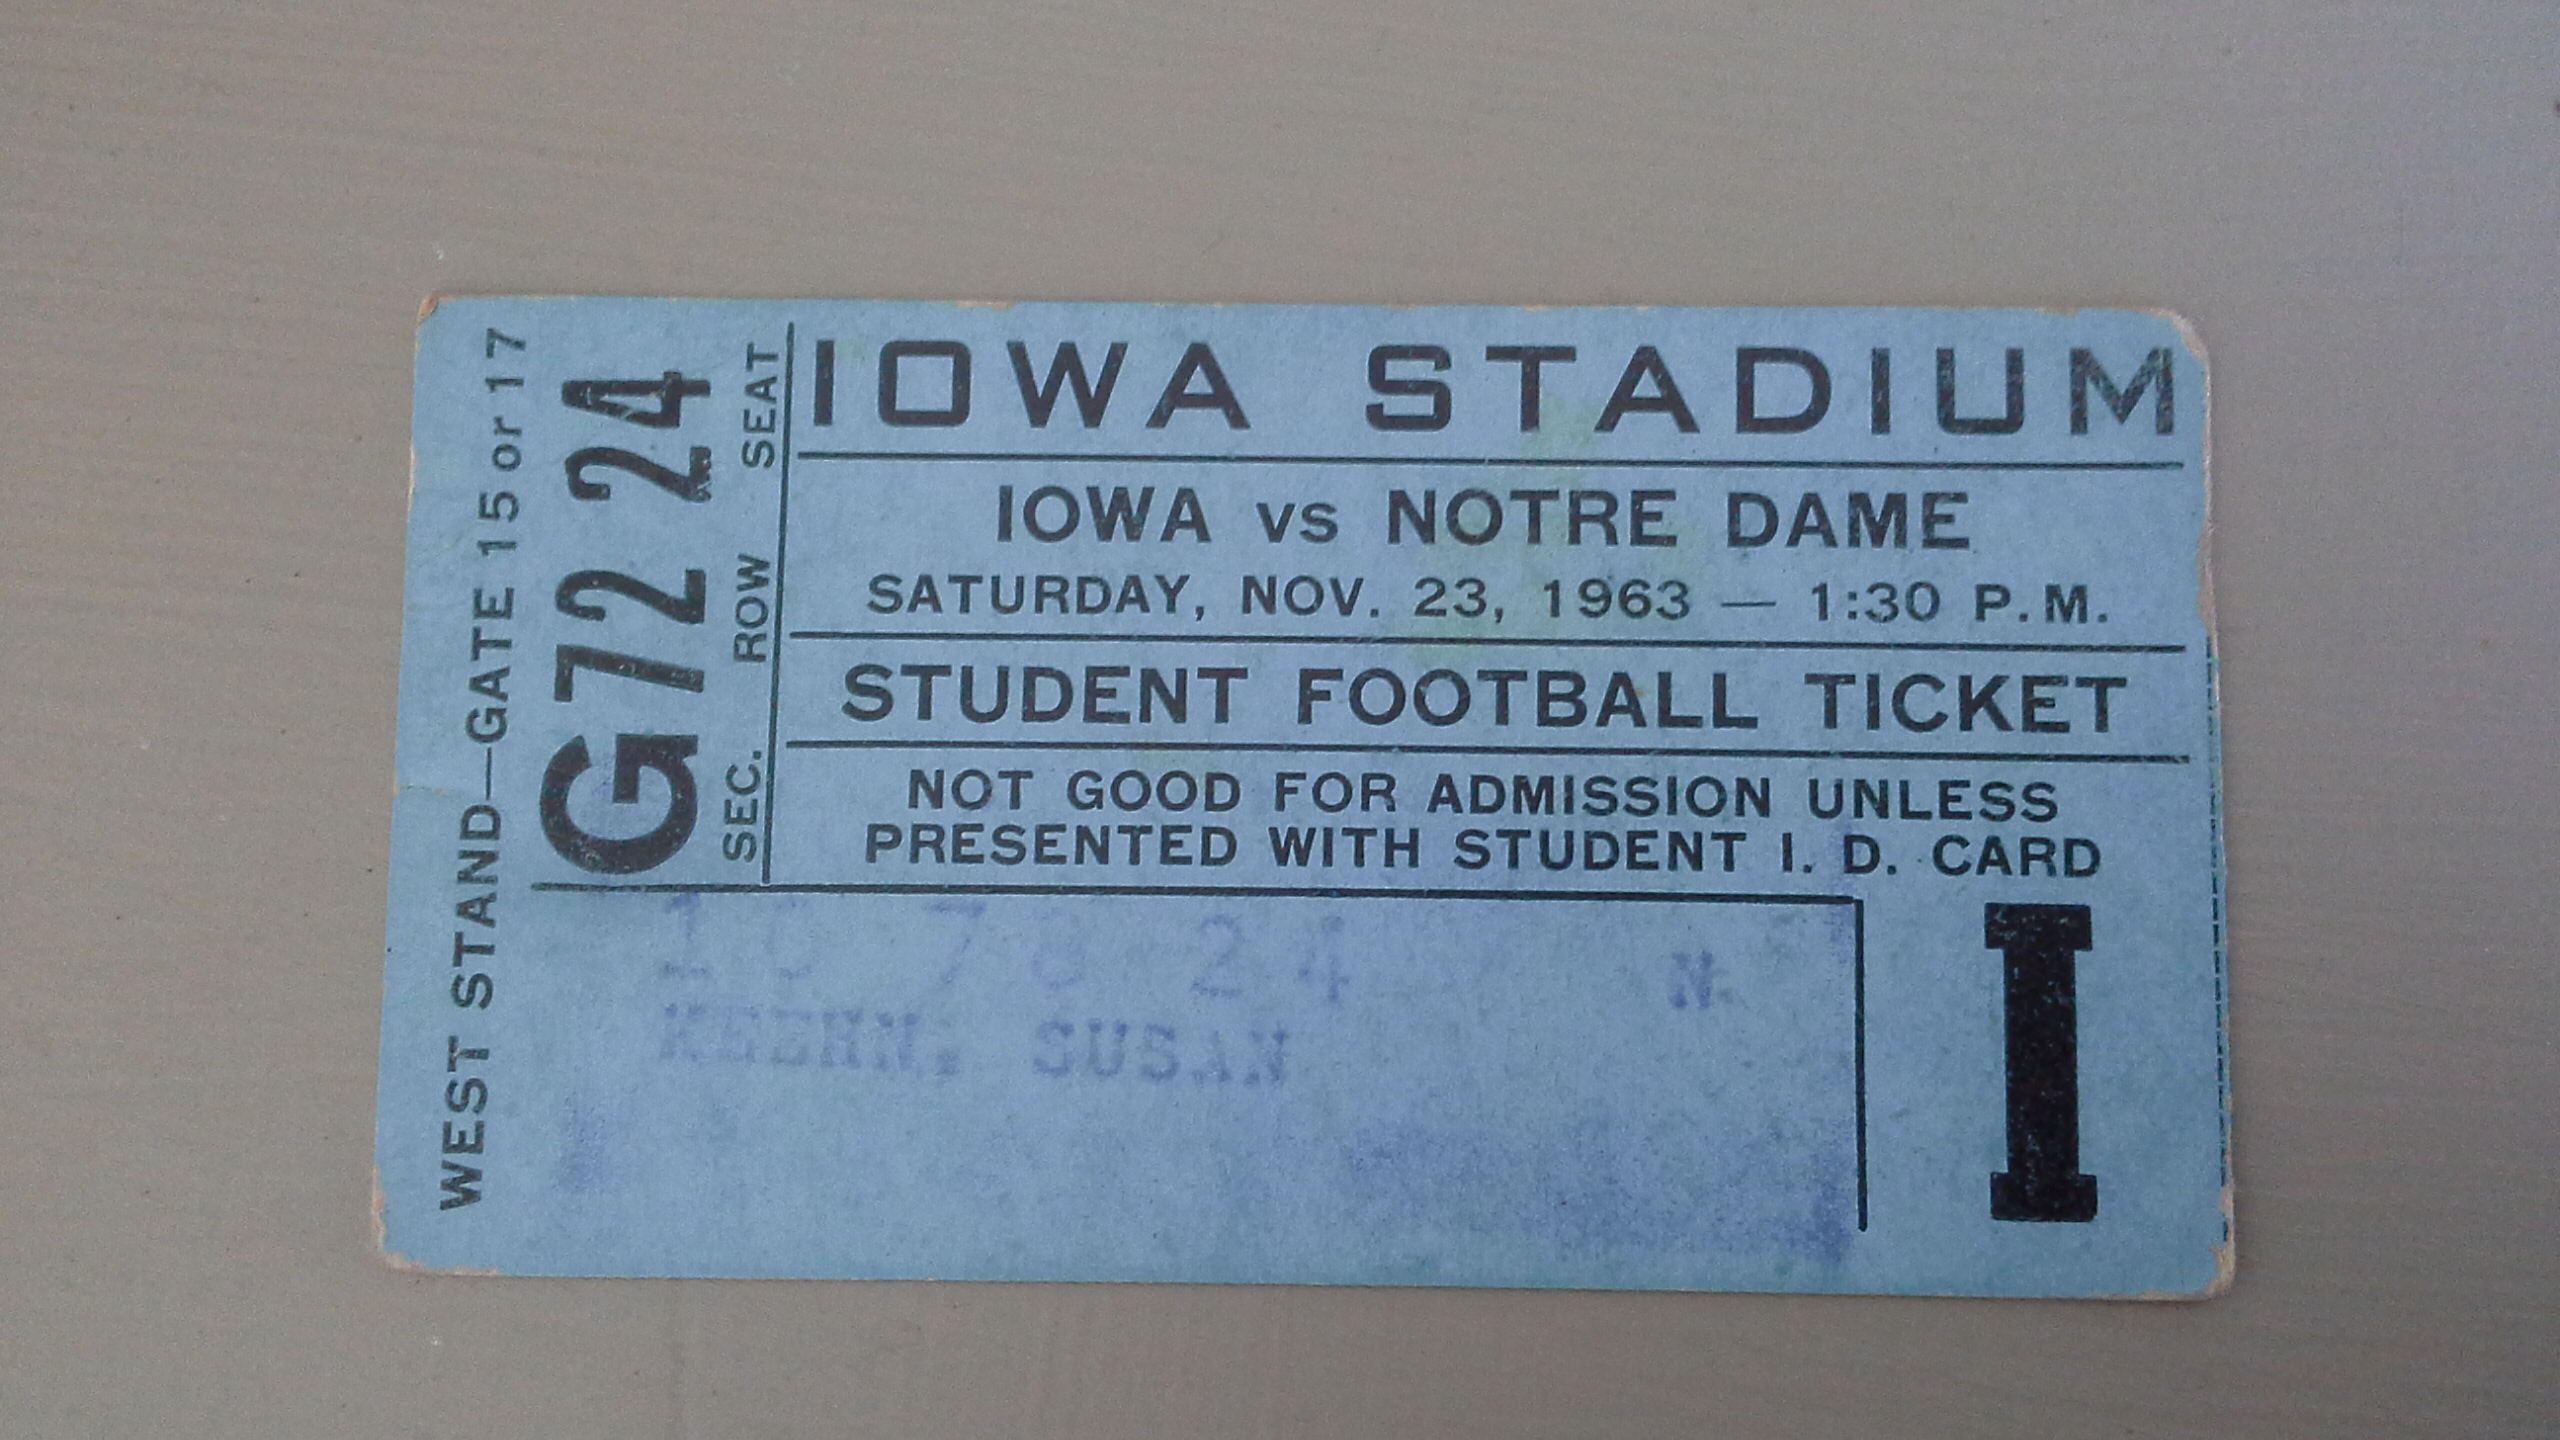 Football Ticket from Iowa vs Notre Dame, Nov. 23, 1963